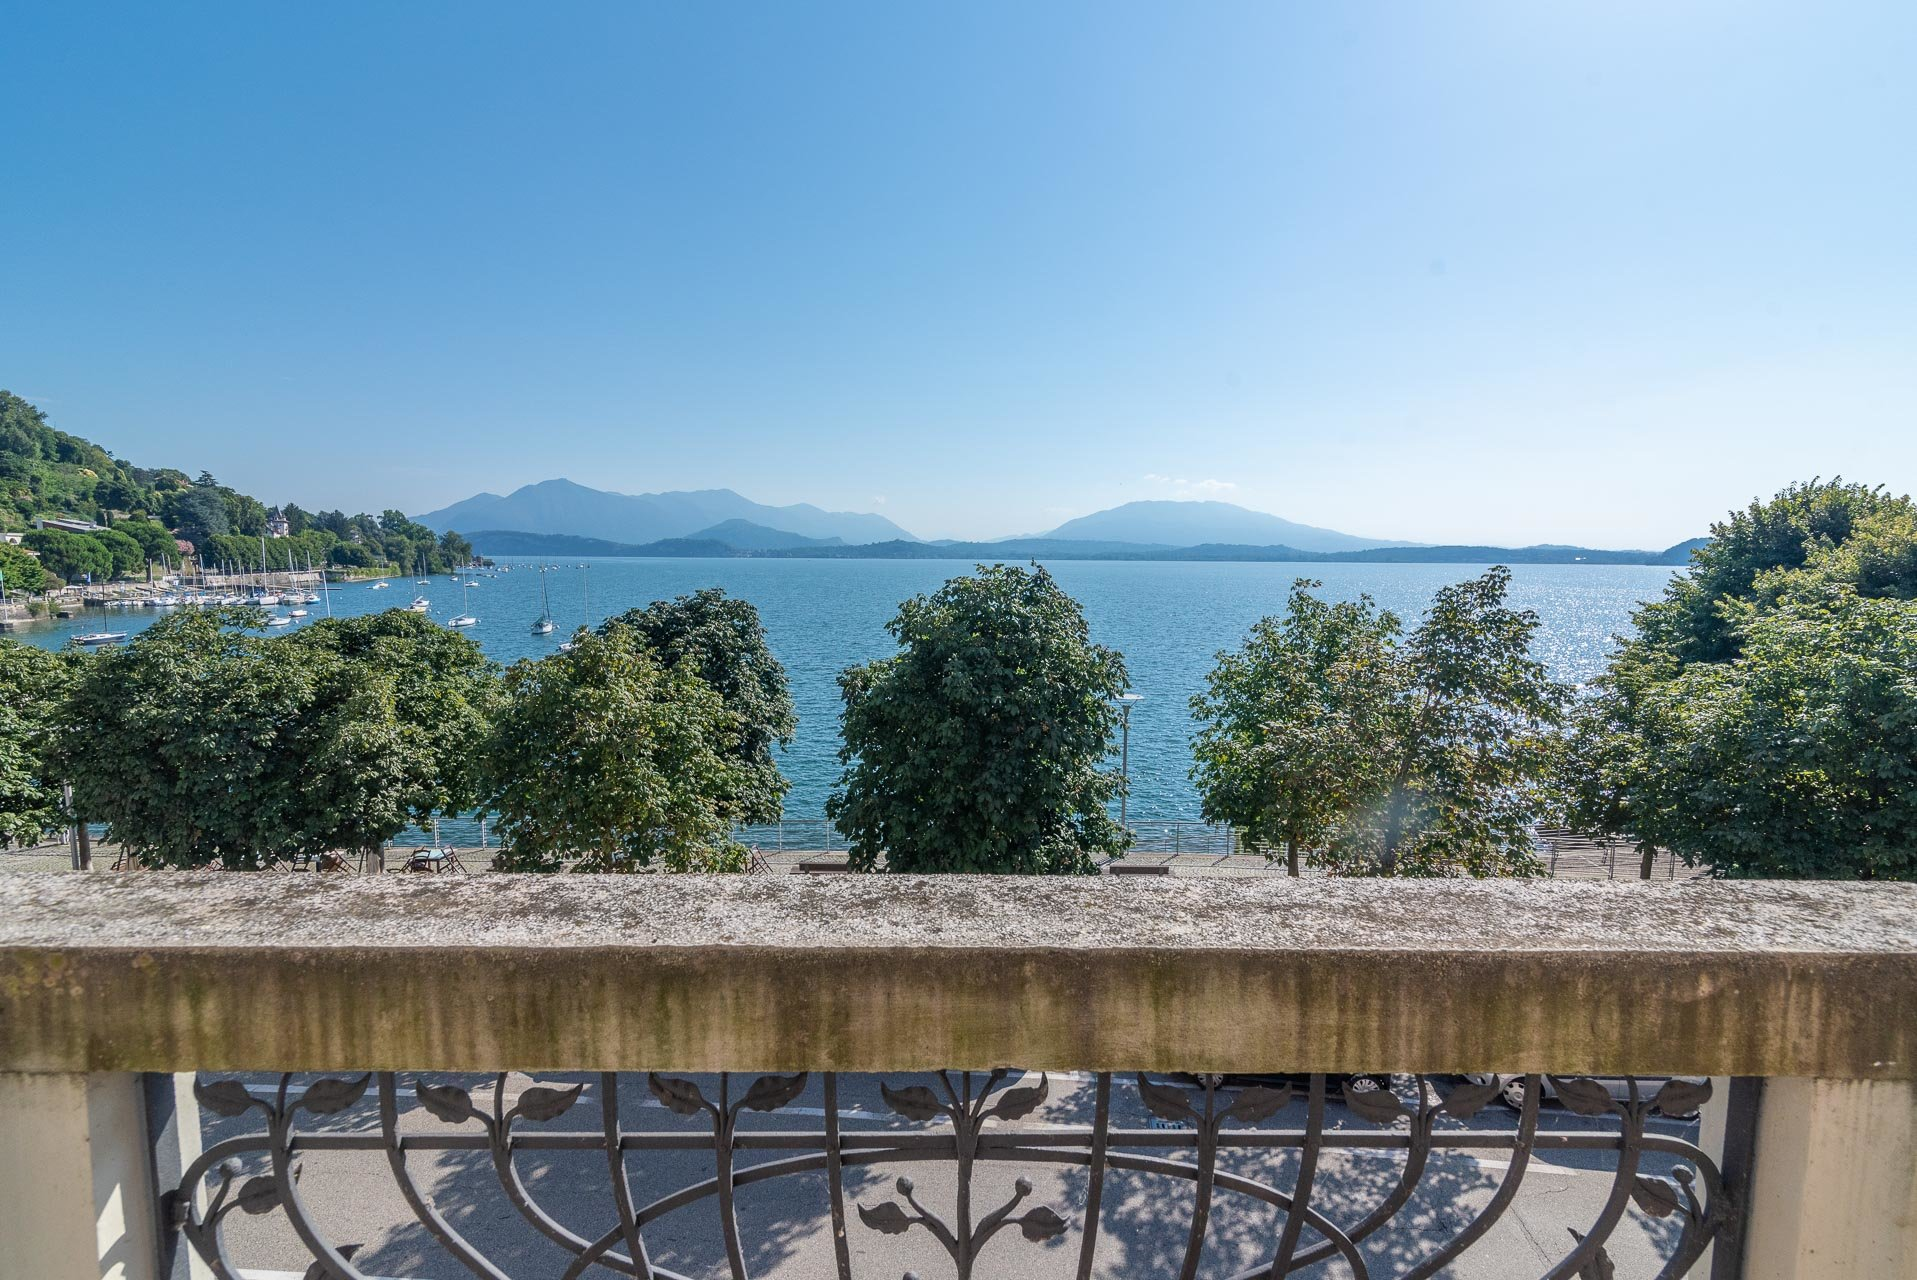 Lesa, apartment for sale on the lakefront - panoramic view